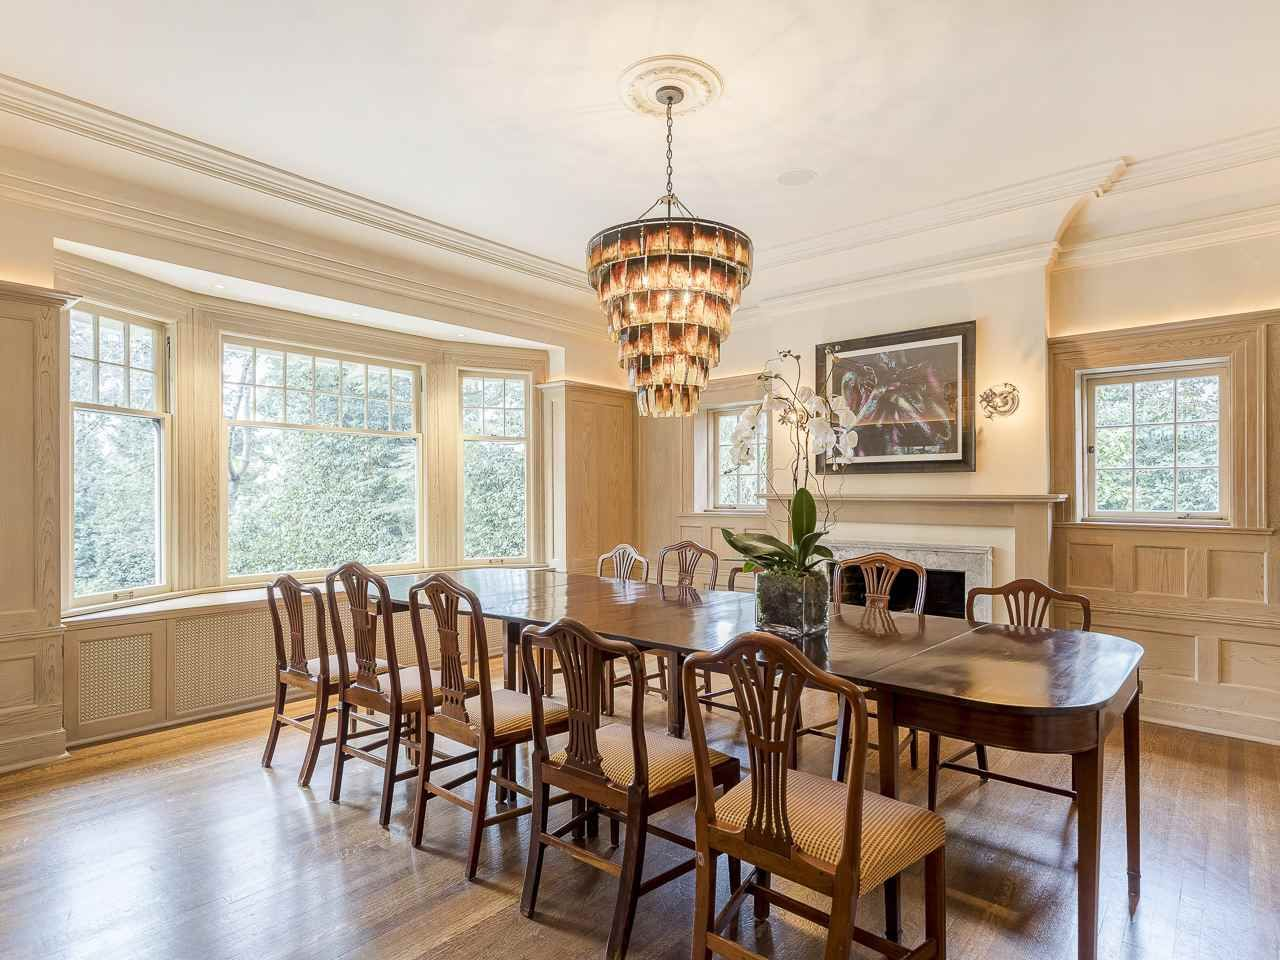 Photo 7: Photos: 3369 THE CRESCENT in Vancouver: Shaughnessy House for sale (Vancouver West)  : MLS®# R2534743